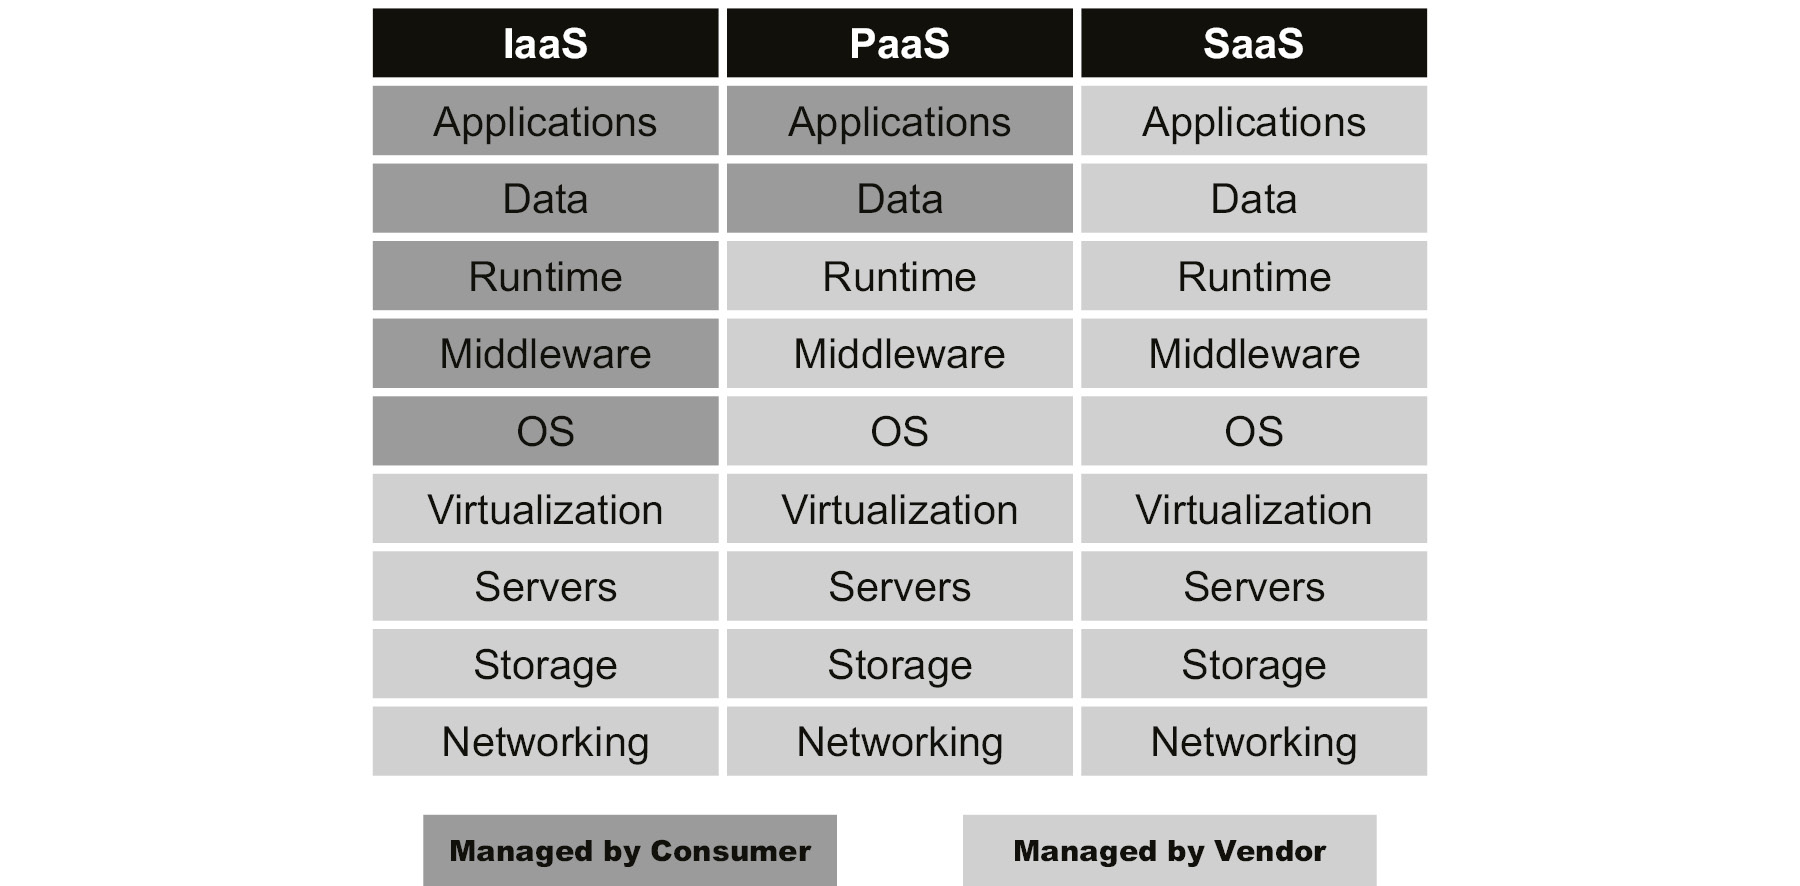 A tabular summary on different levels of control within each of the deployment patterns in IaaS, PaaS, and SaaS.